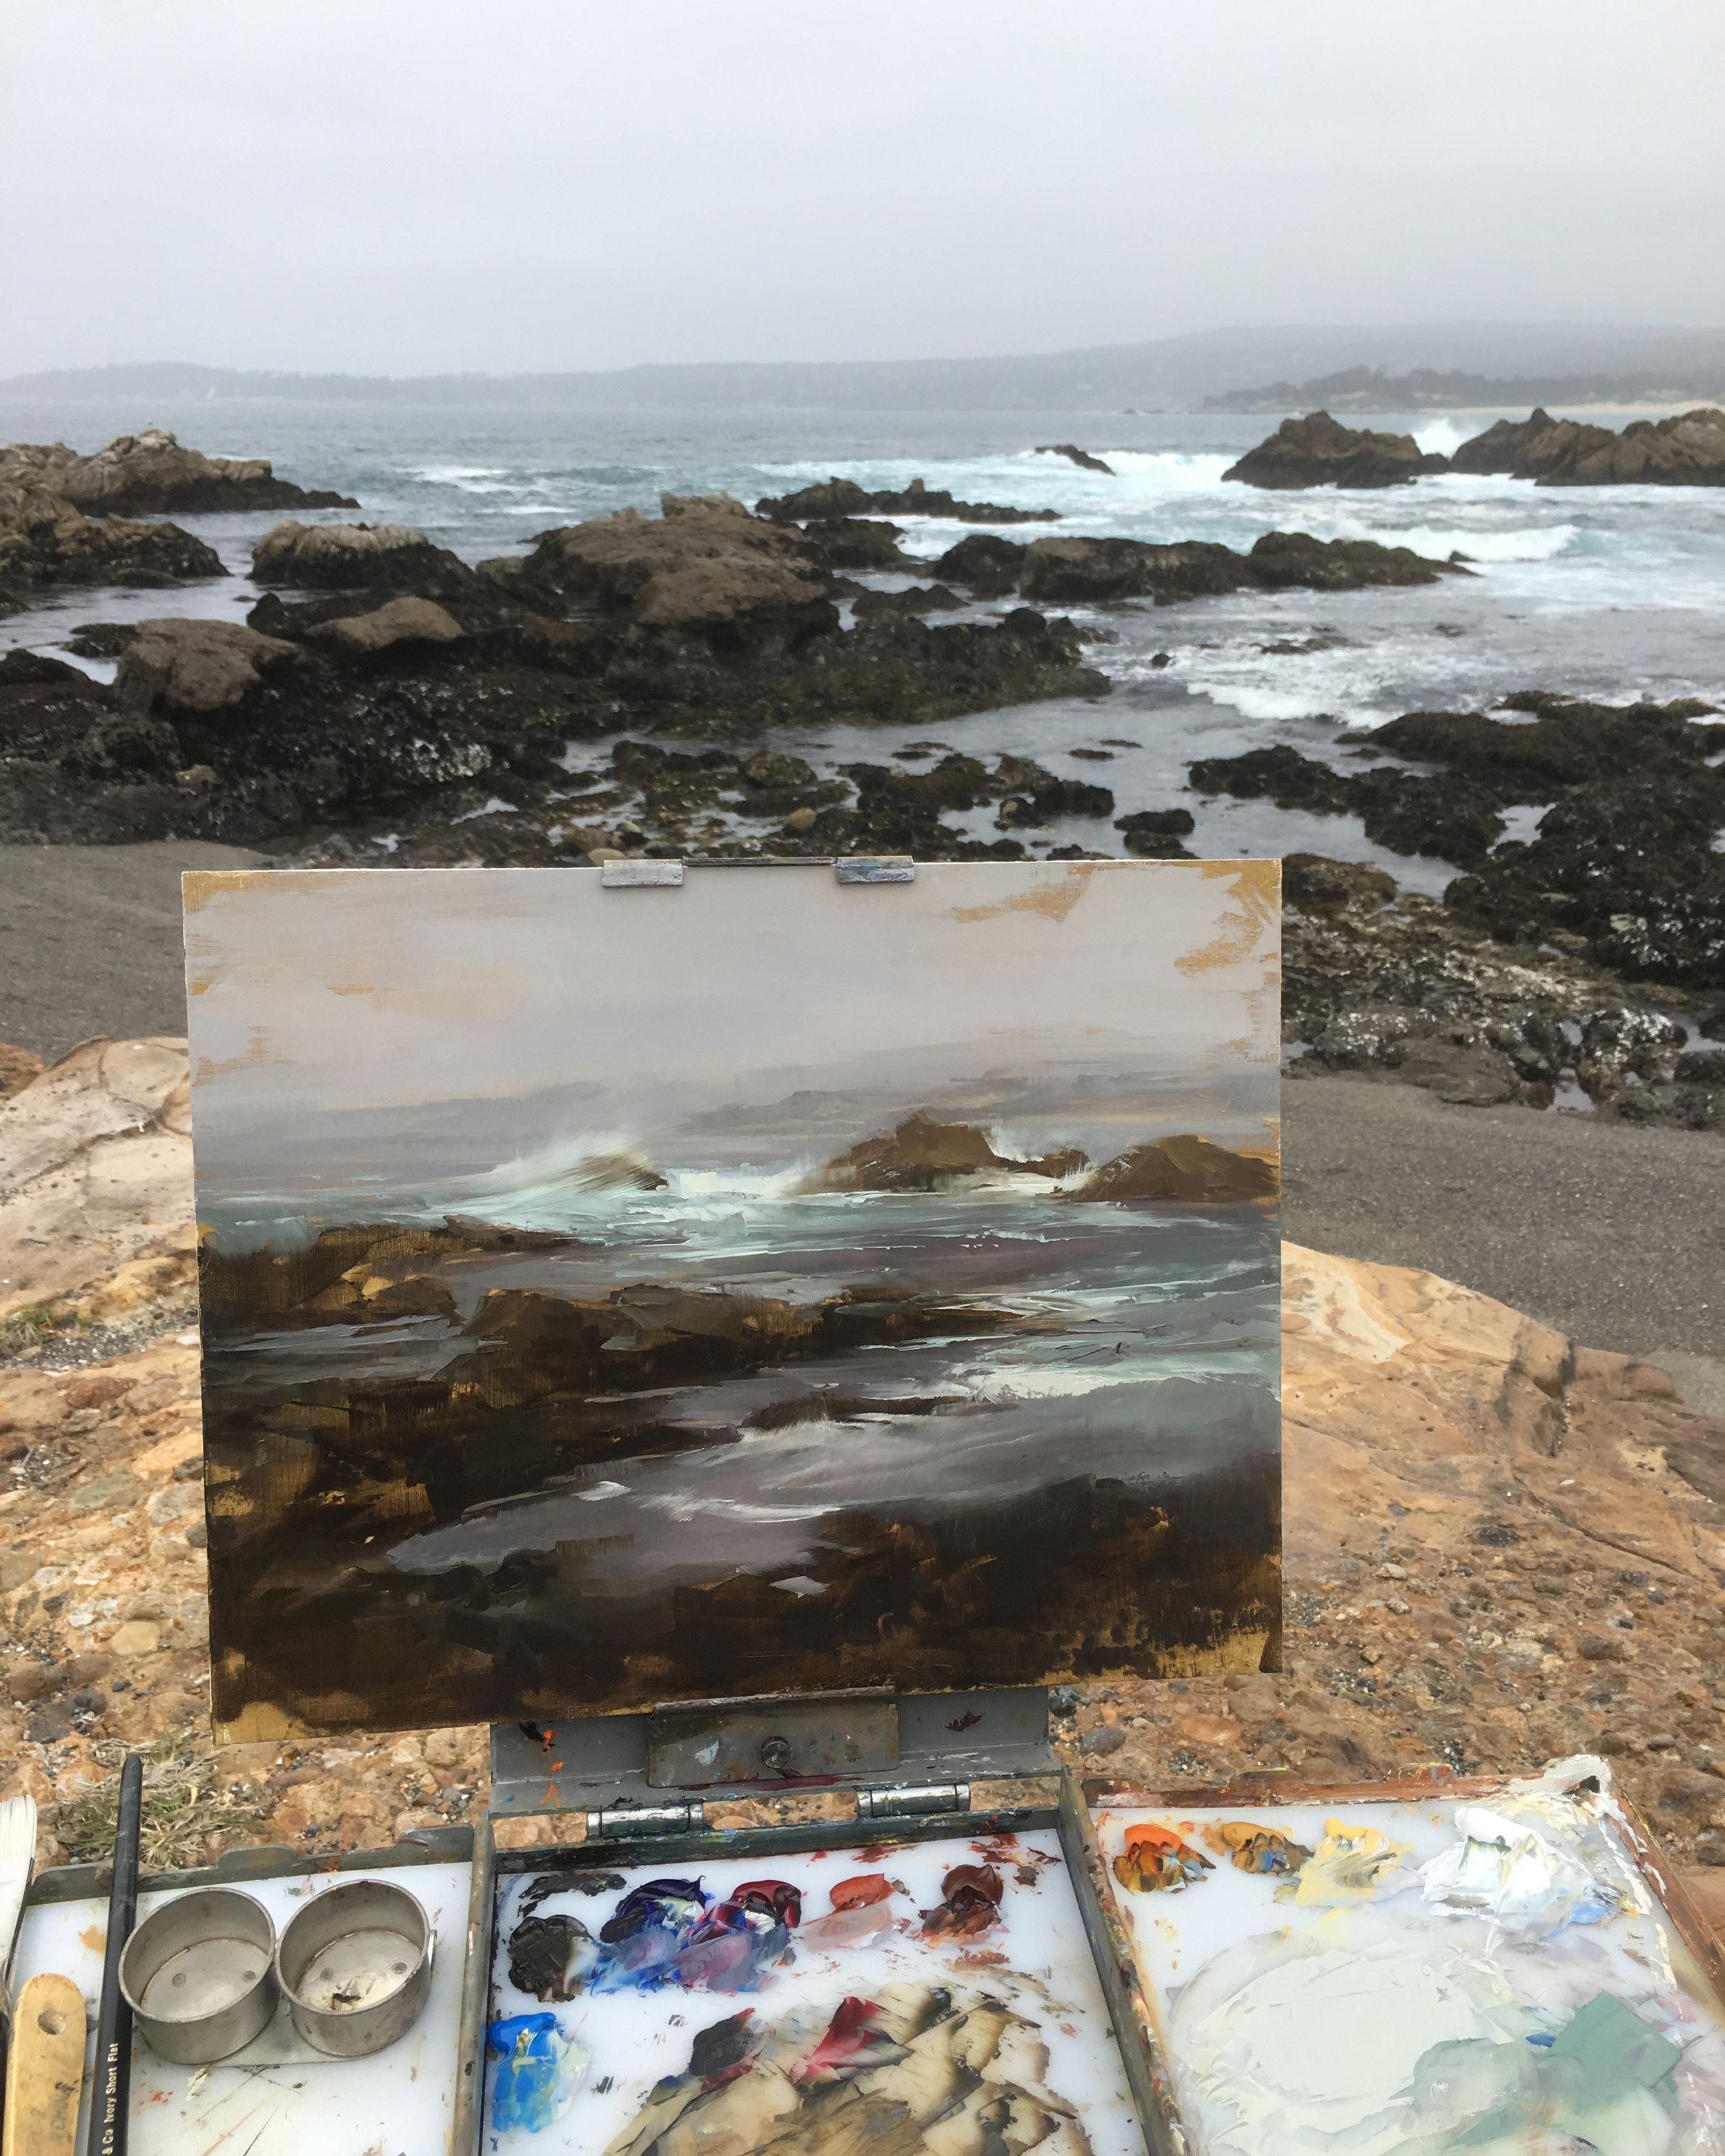 On Location at Point Lobos